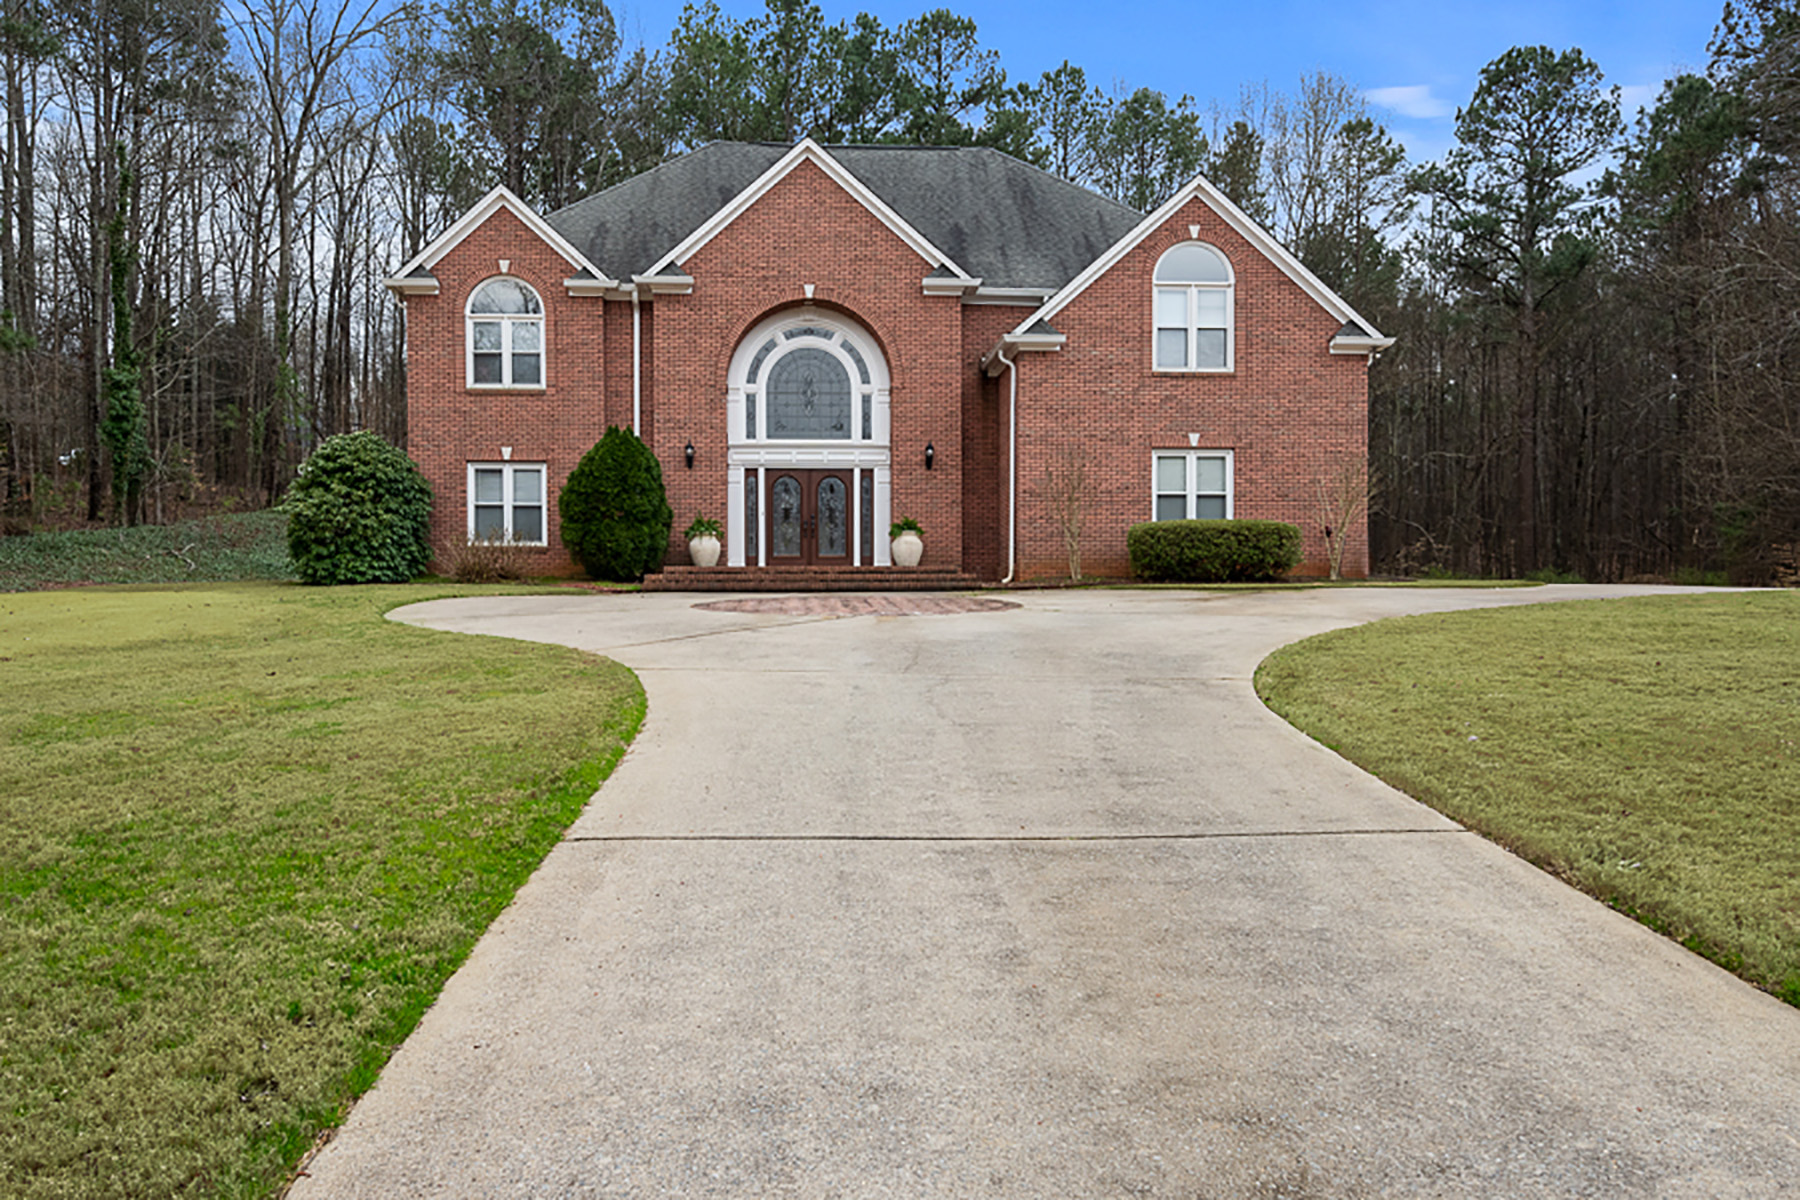 Single Family Homes for Sale at A Grand Home in an Immaculate Community 5203 Old Mountain Court Powder Springs, Georgia 30127 United States